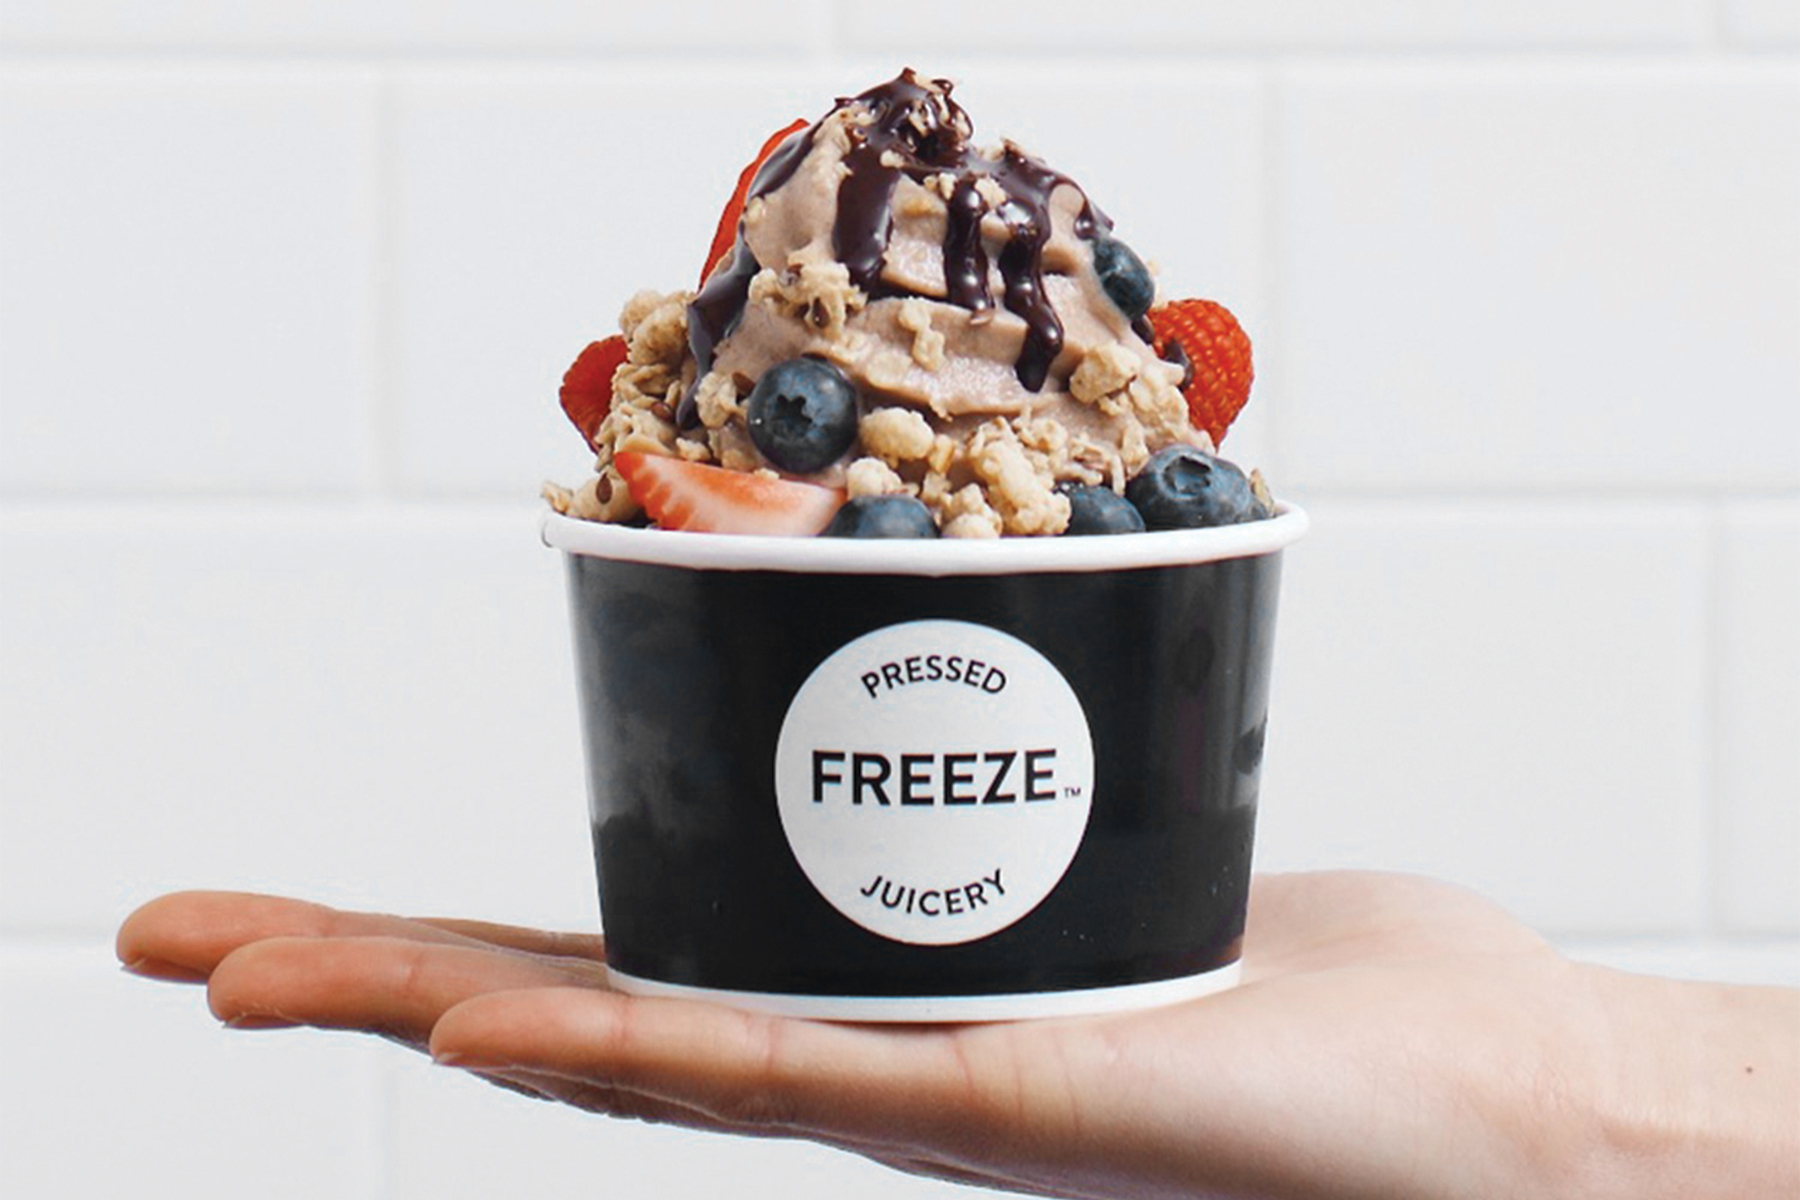 pressed juicery vegan soft serve